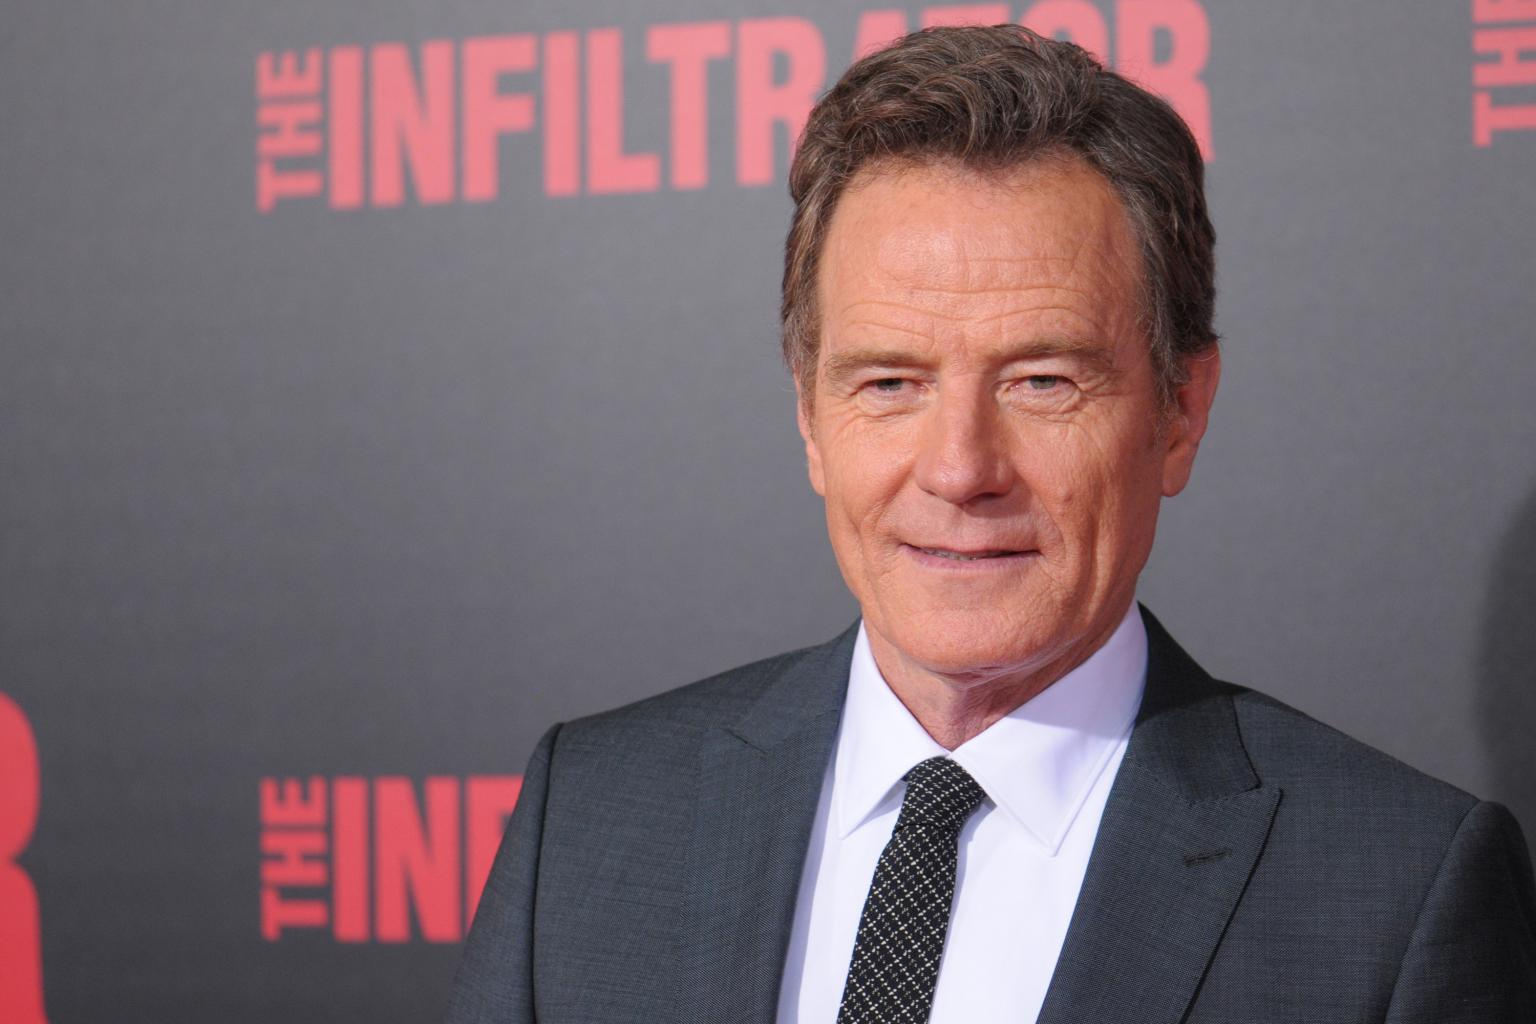 Bryan Cranston On Being Abandoned By His Parents: 'There's Still A Lot Of Pain I'm Dealing With'